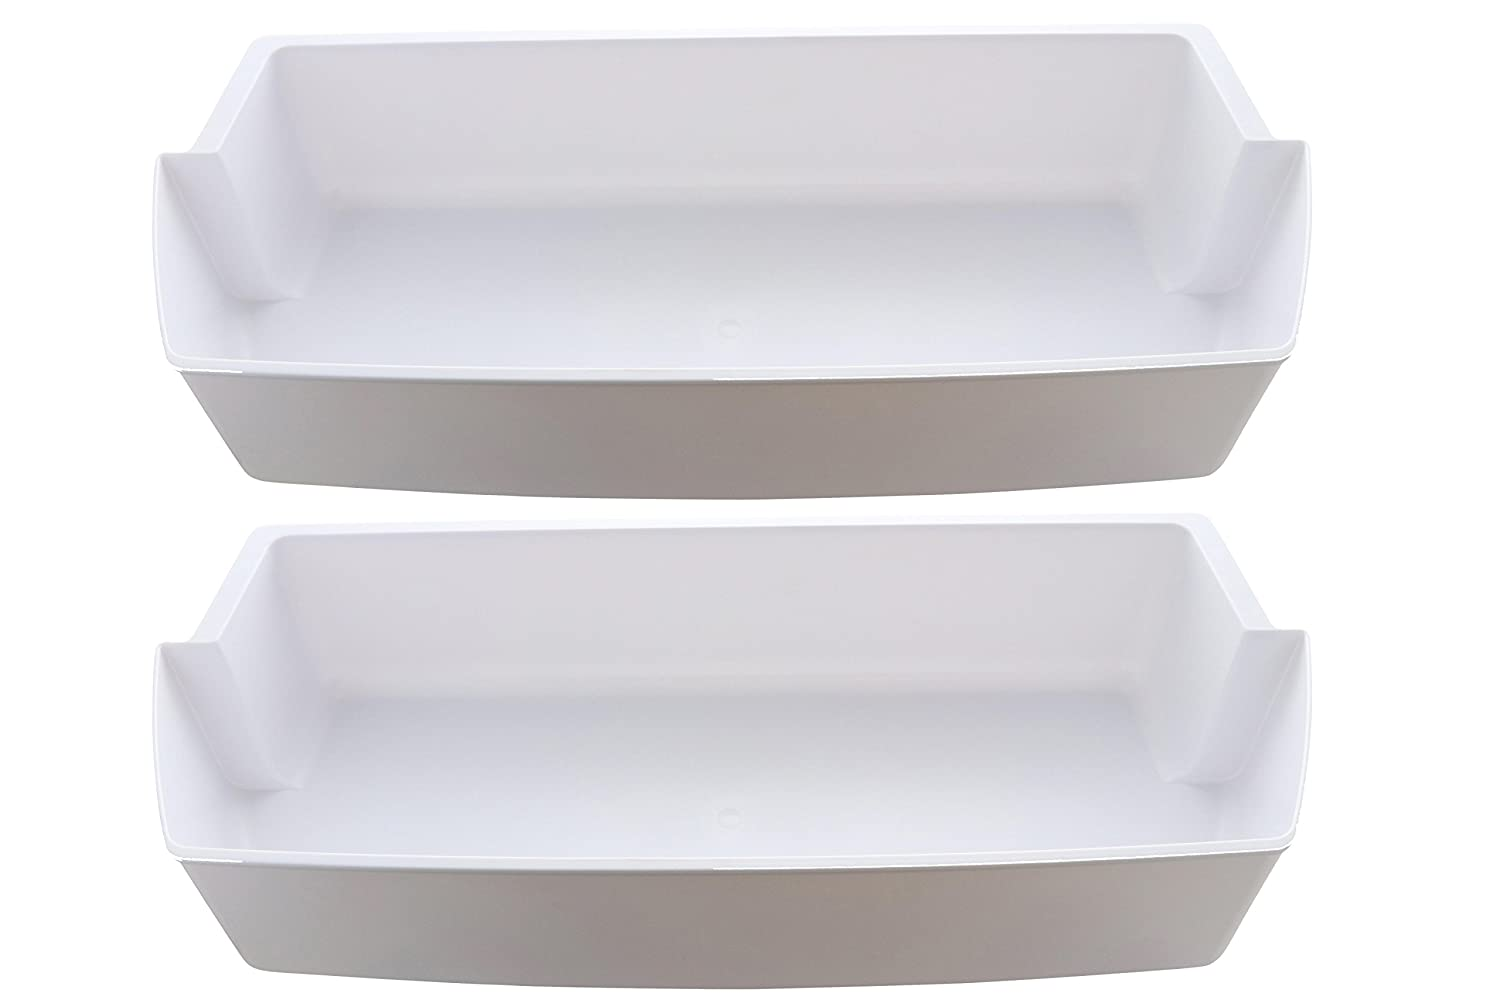 2-Pack Door Shelf Bins 2187172 Replacement for Frigidaire Whirlpool Kenmore Refrigerator PS328468